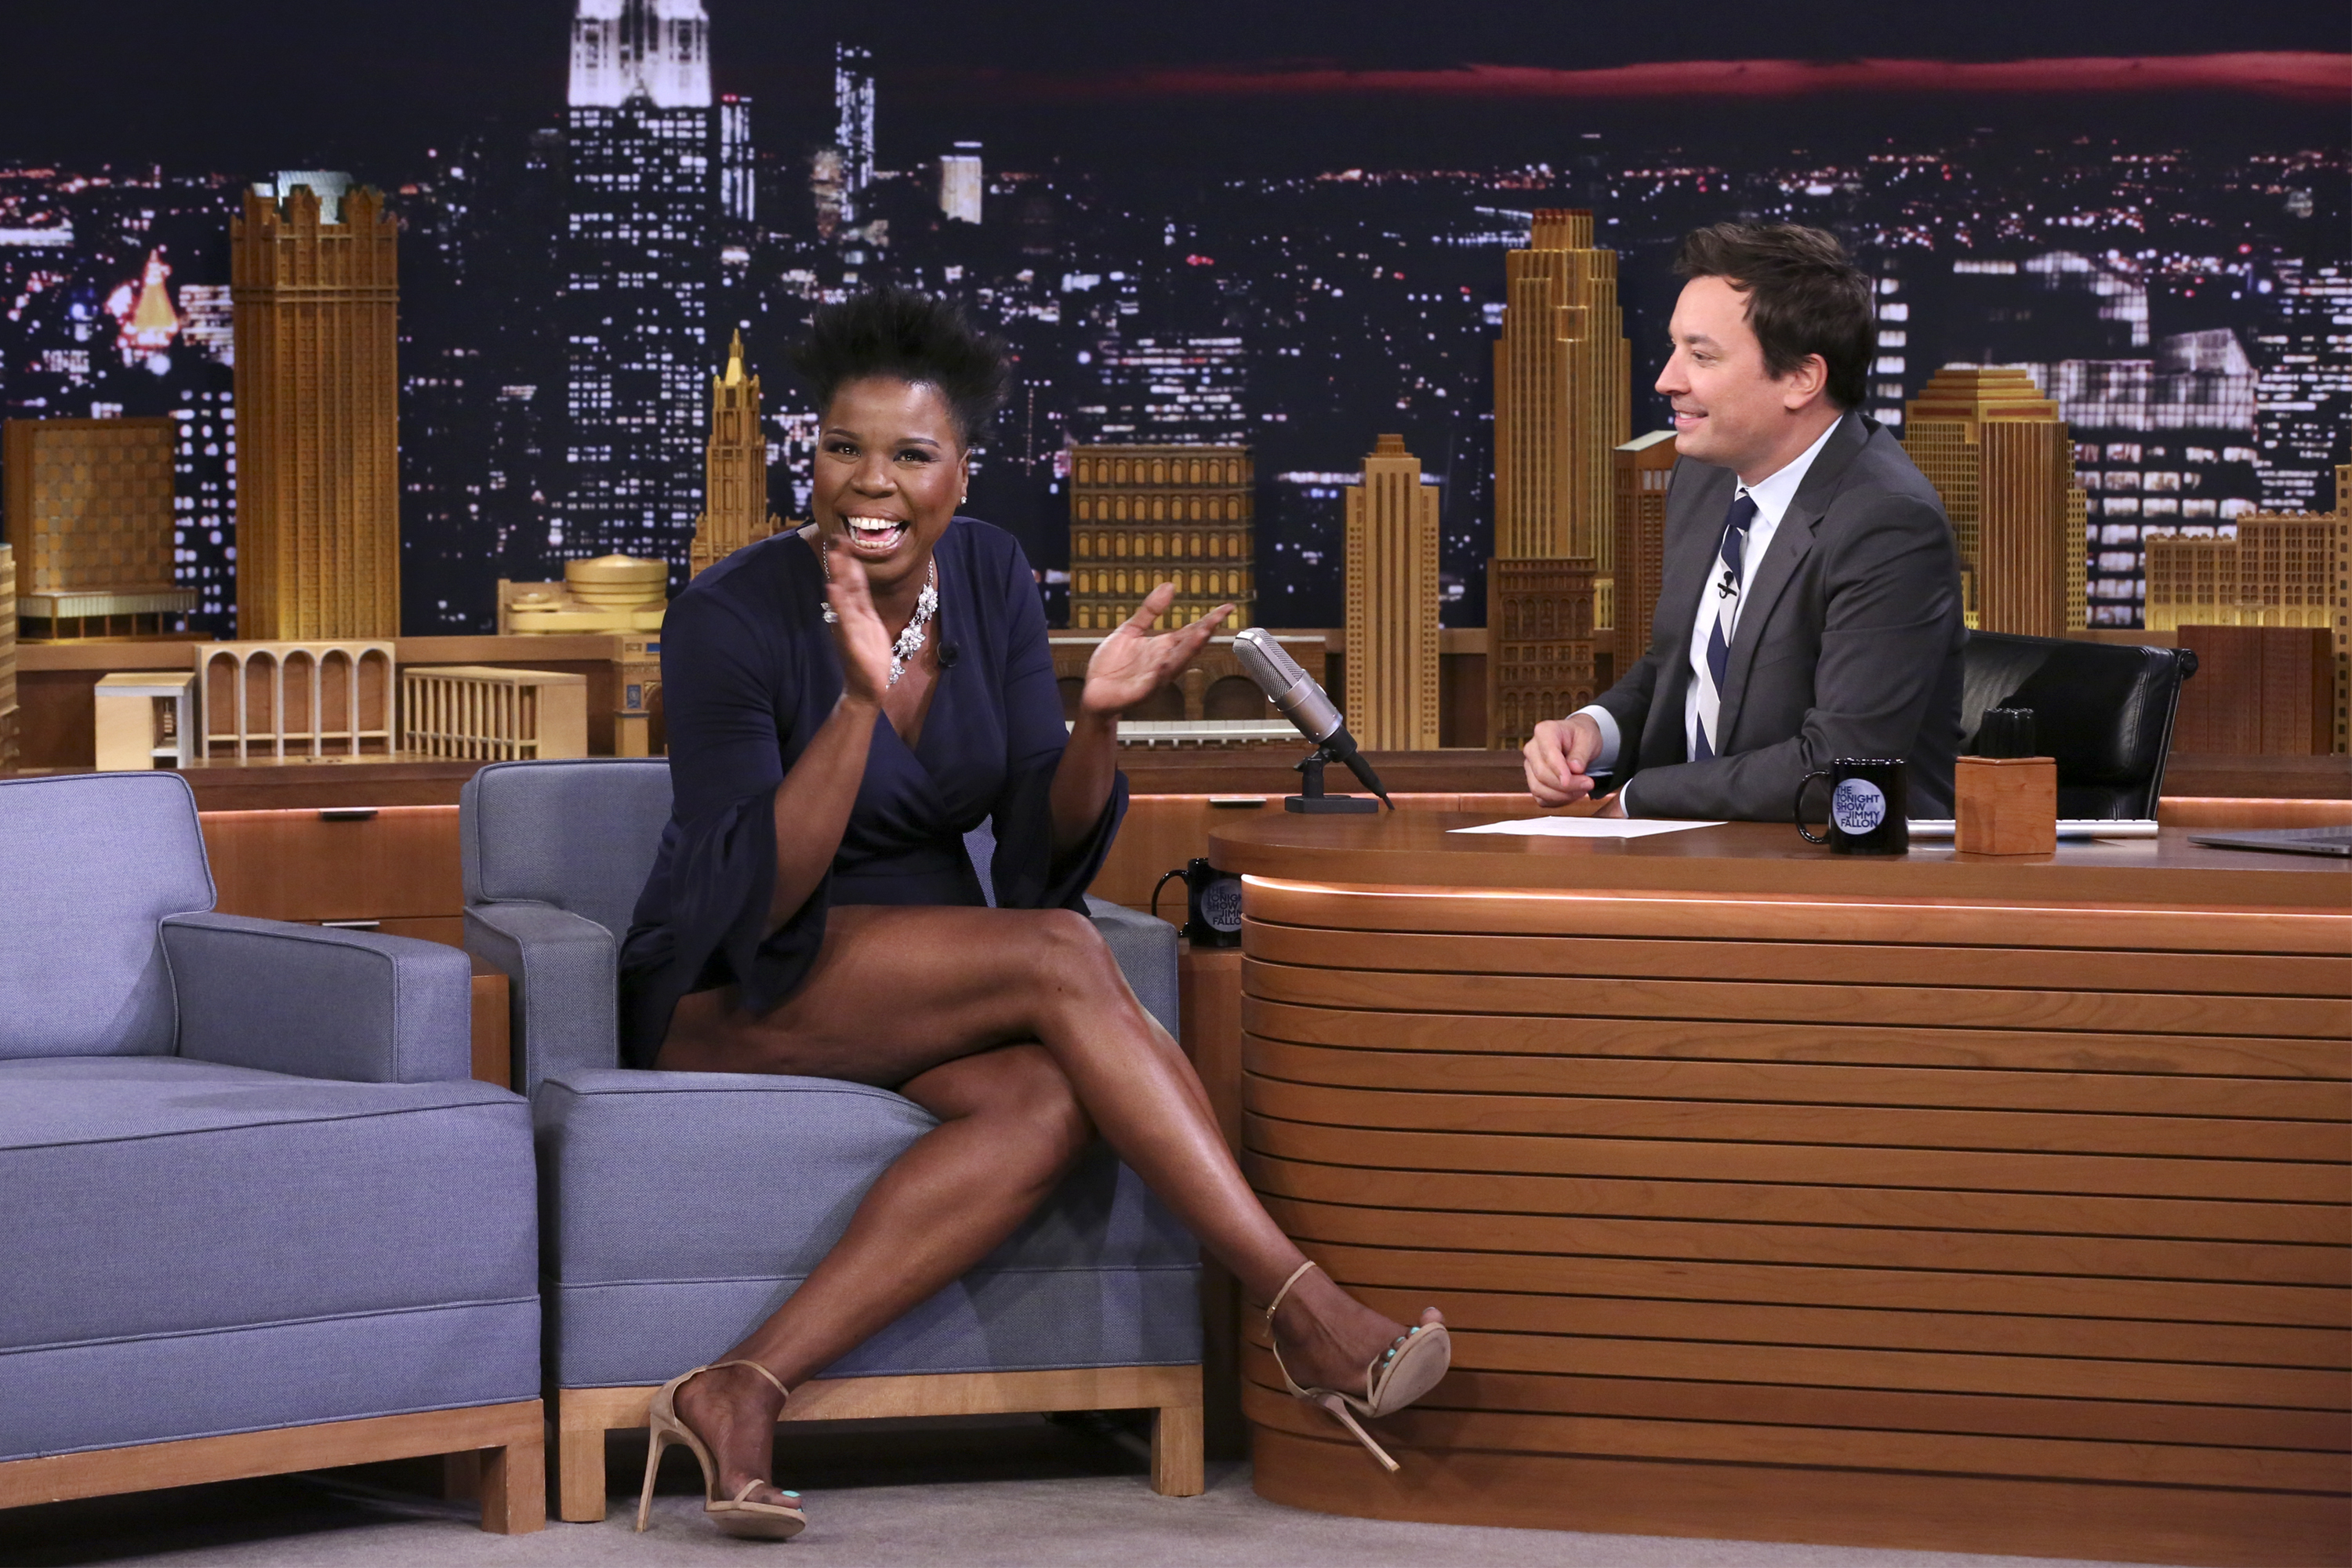 Comedian Leslie Jones during an interview with host Jimmy Fallon on Aug. 15, 2017.